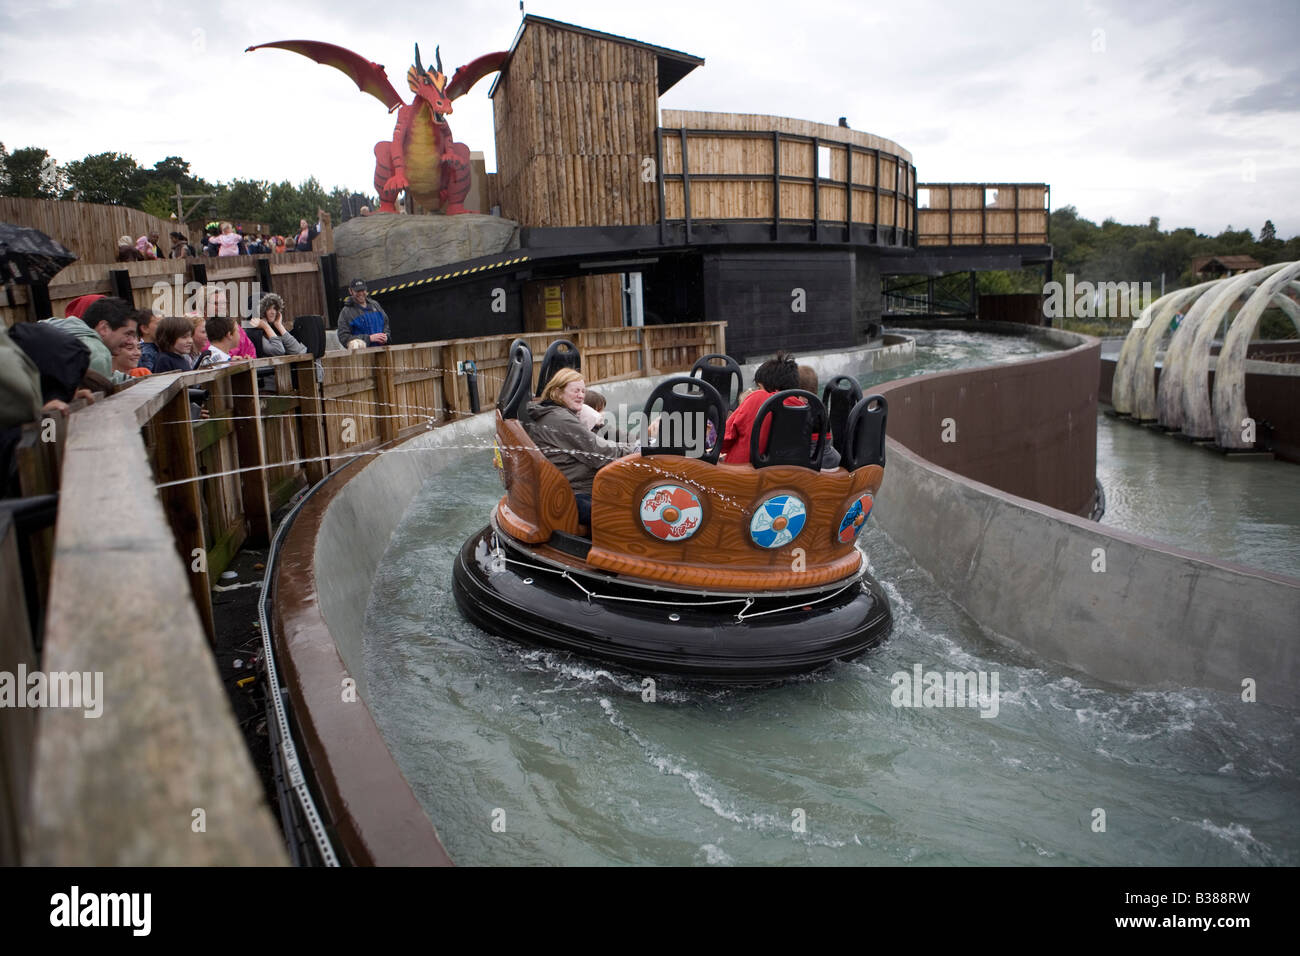 Pic Shows a ride at Legoland in Windsor Stock Photo